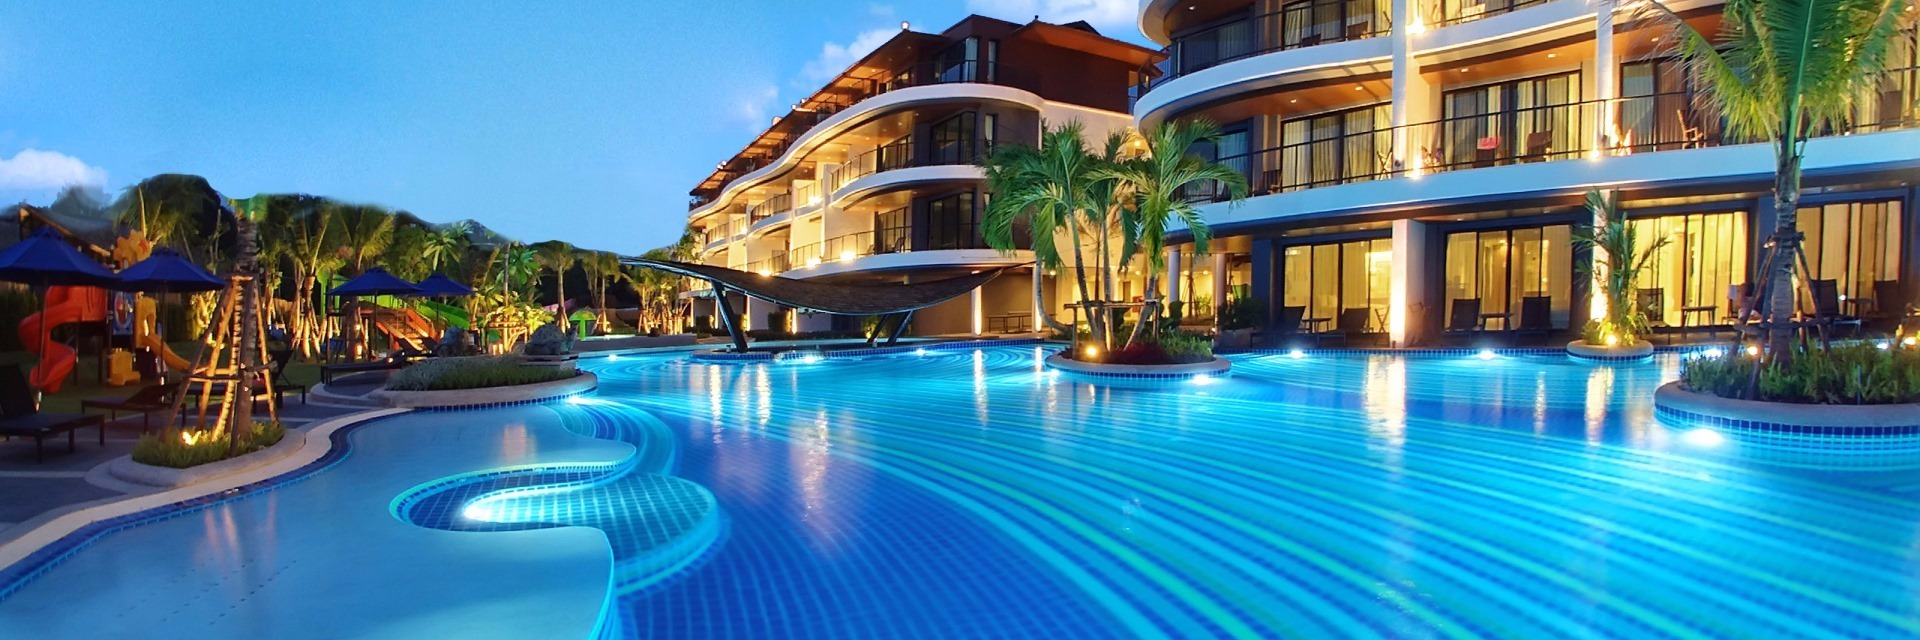 Krabi Resort New Homepage Slide 1